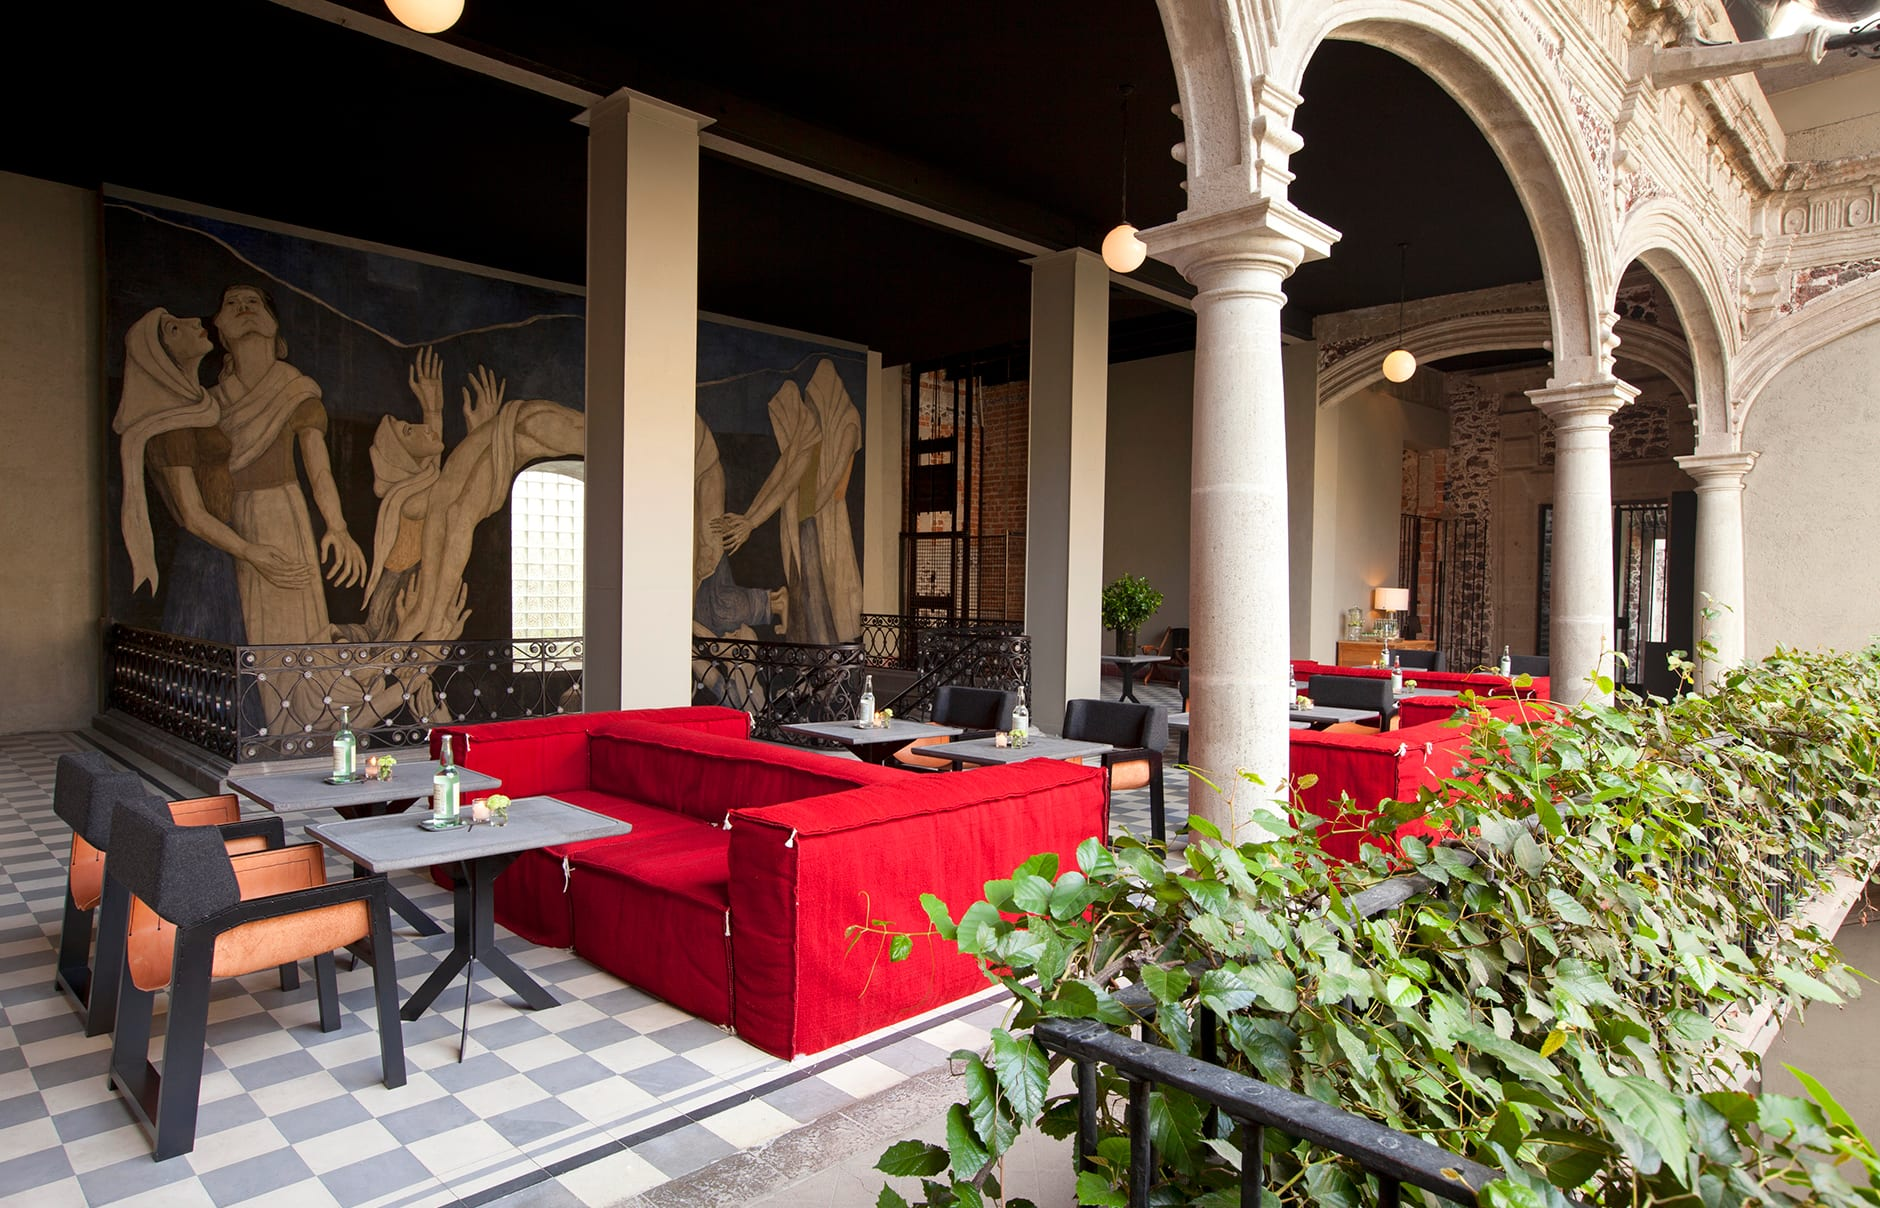 Downtown Mexico (Mexico City), Mexico. Hotel Review by TravelPlusStyle. Photo © Downtown Mexico